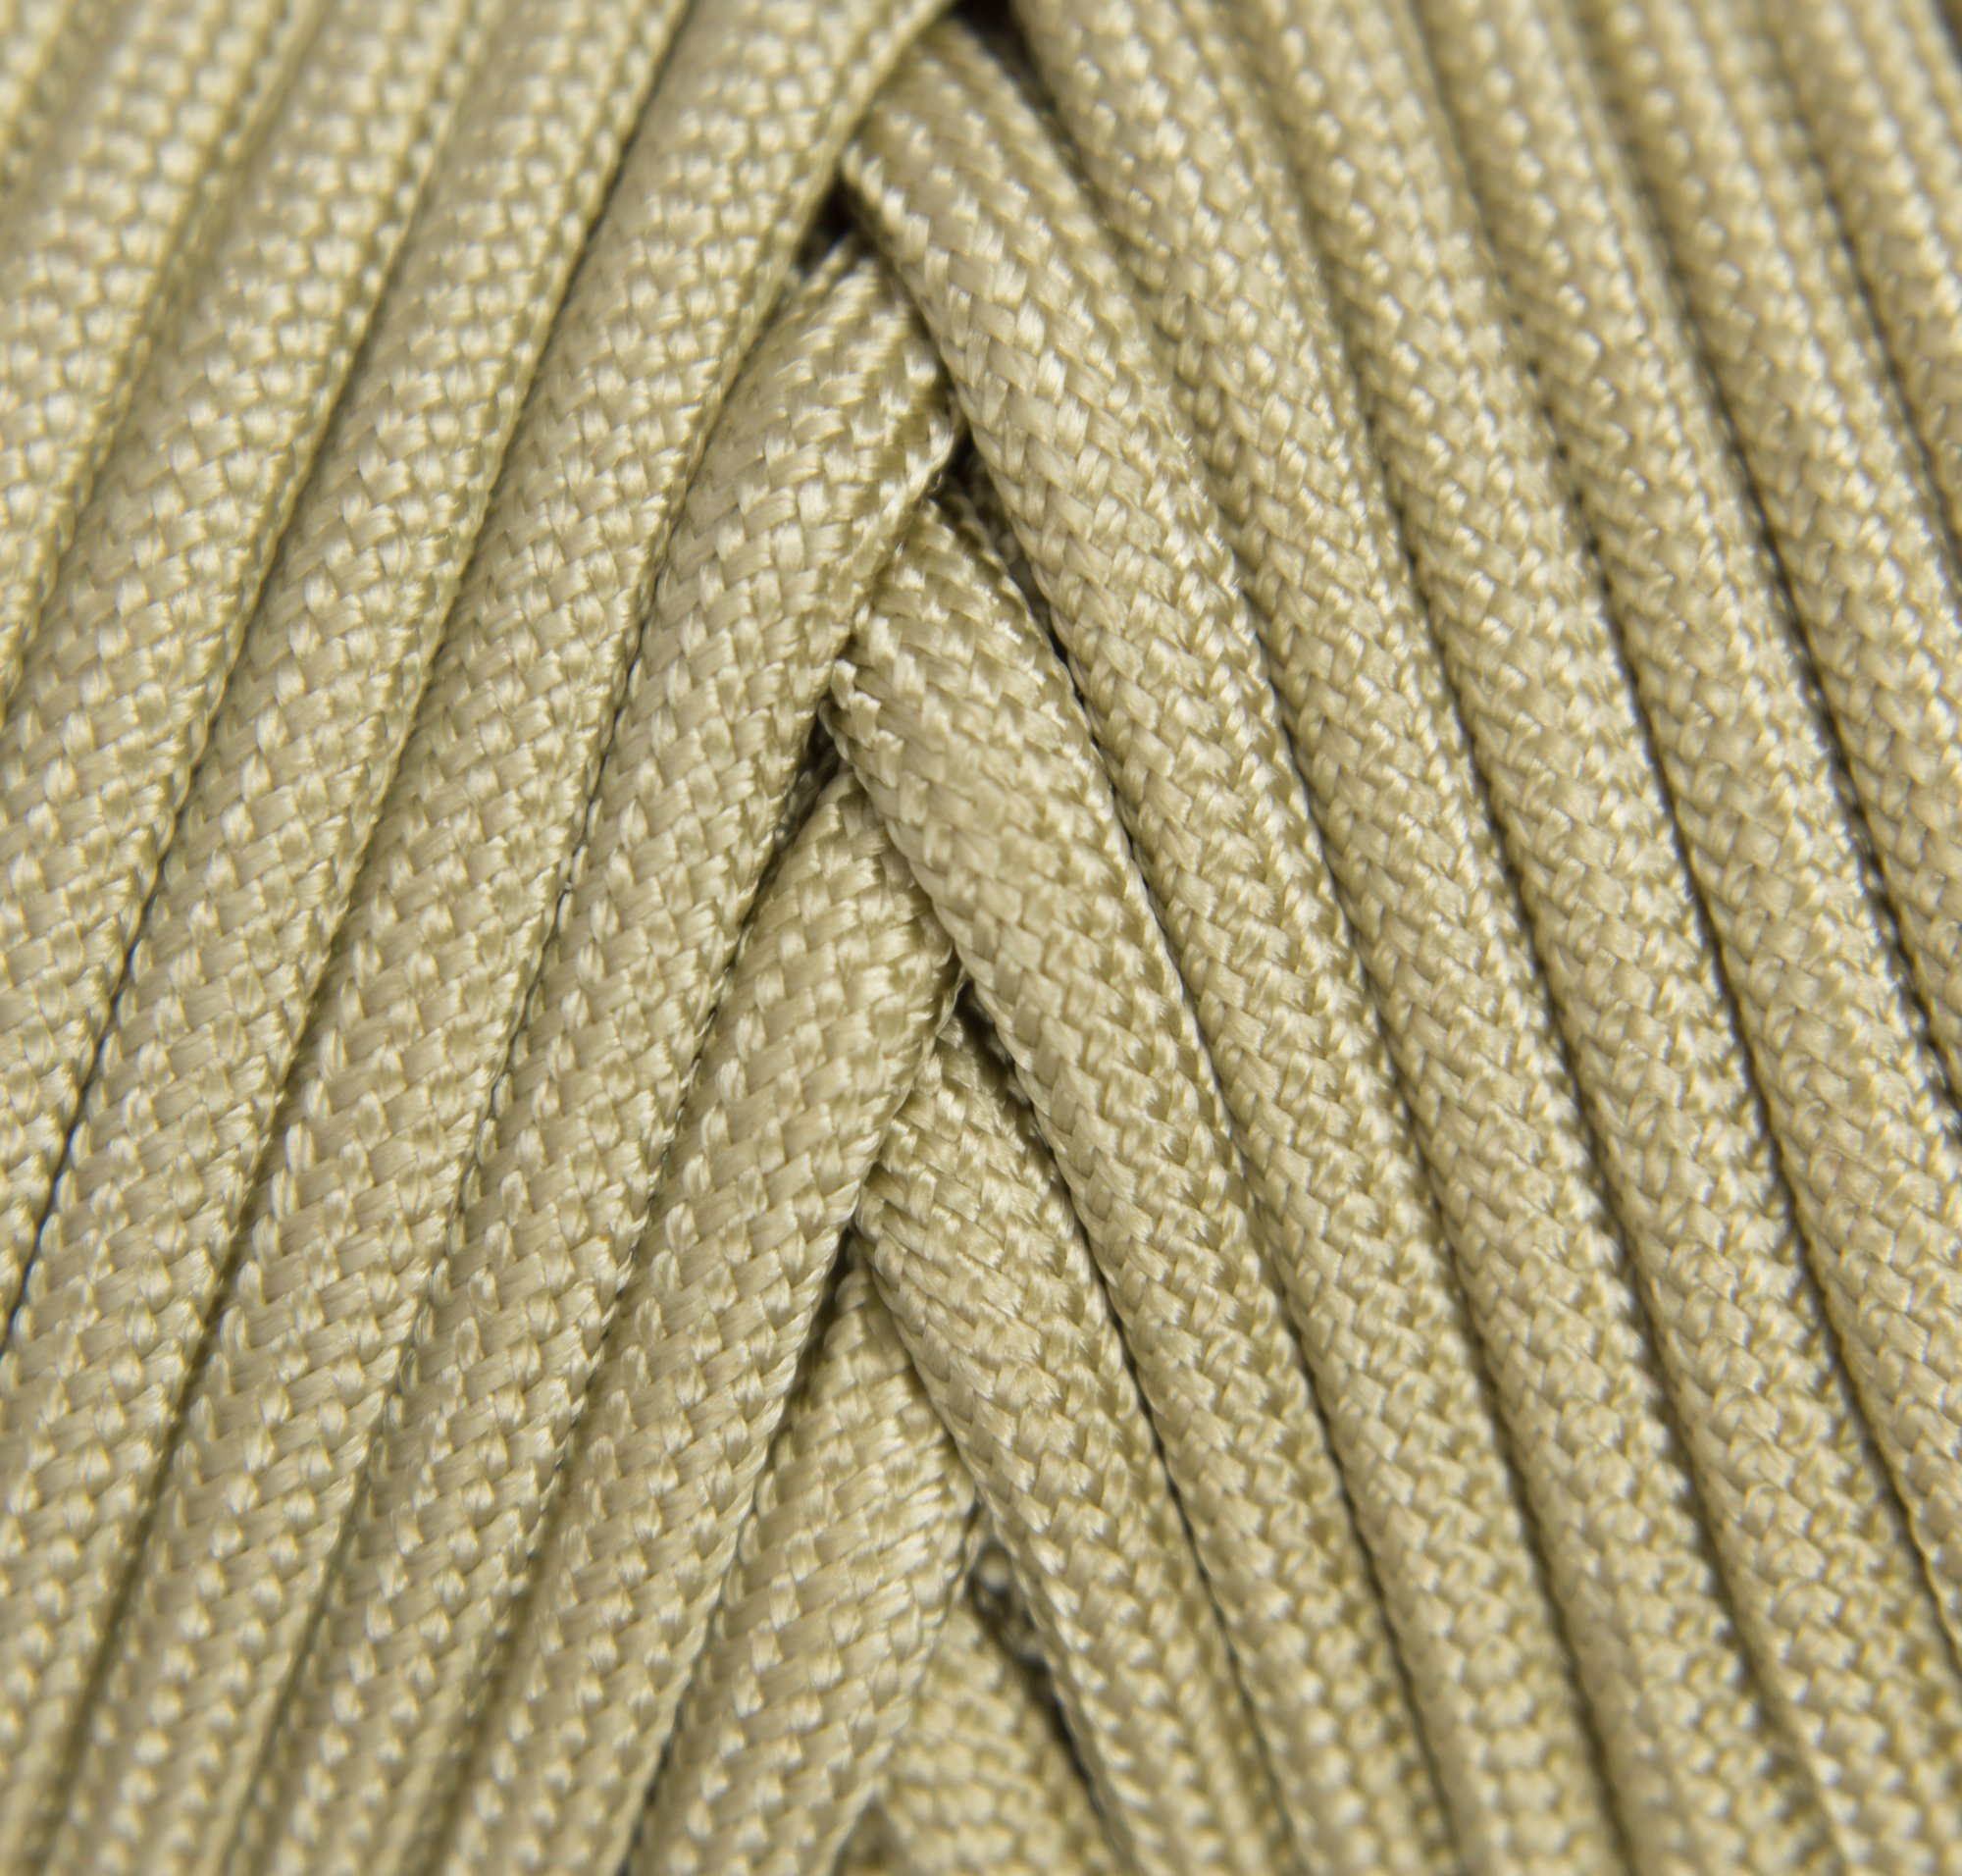 TOUGH-GRID 750lb Buckskin (Desert Sand) Paracord/Parachute Cord - Genuine Mil Spec Type IV 750lb Paracord Used by The US Military (MIl-C-5040-H) - 100% Nylon - Made in The USA. 100Ft. - Buckskin by TOUGH-GRID (Image #3)